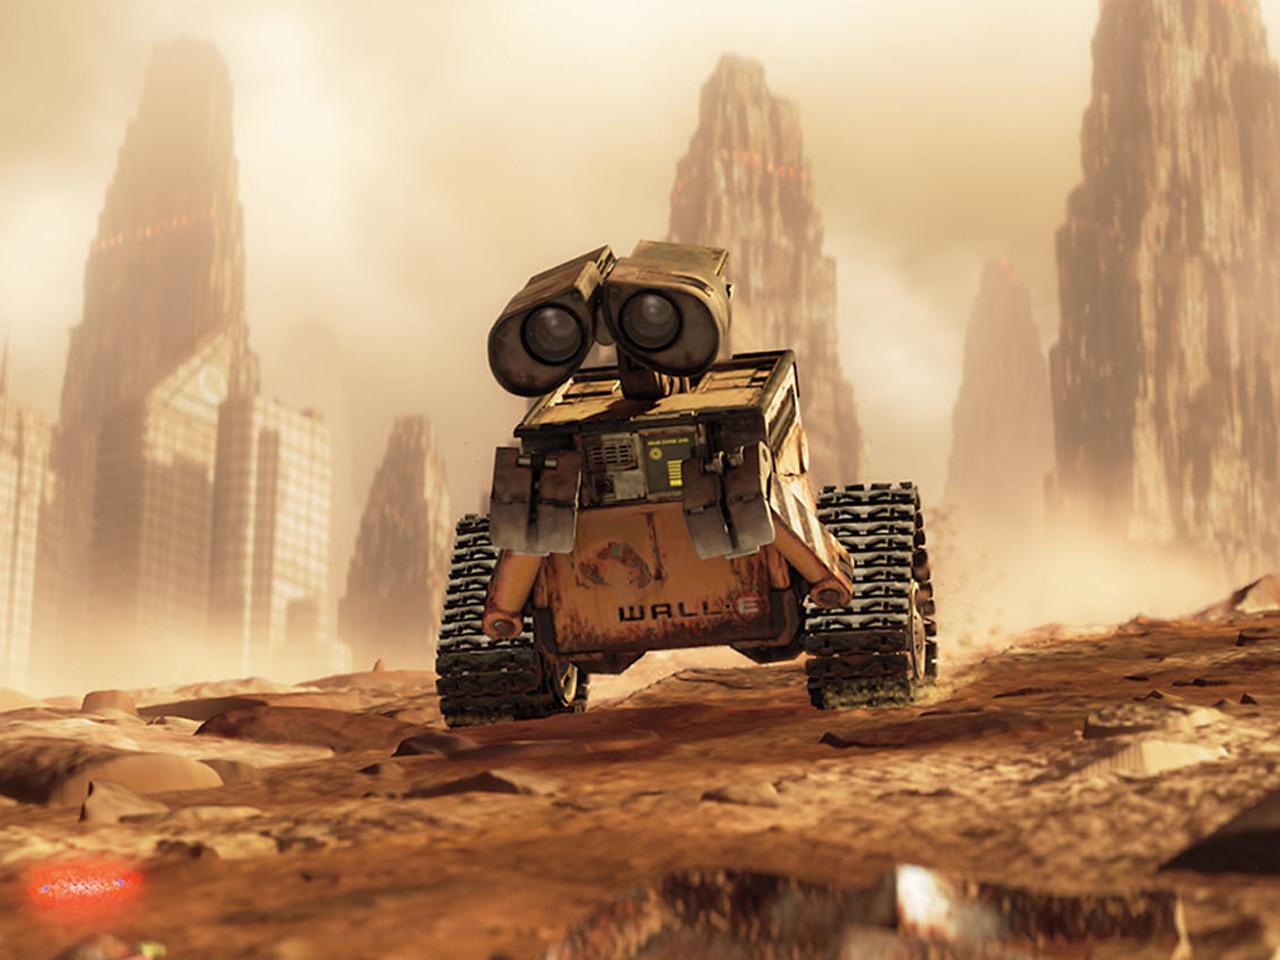 A still from the kids' animated movie Wall-E